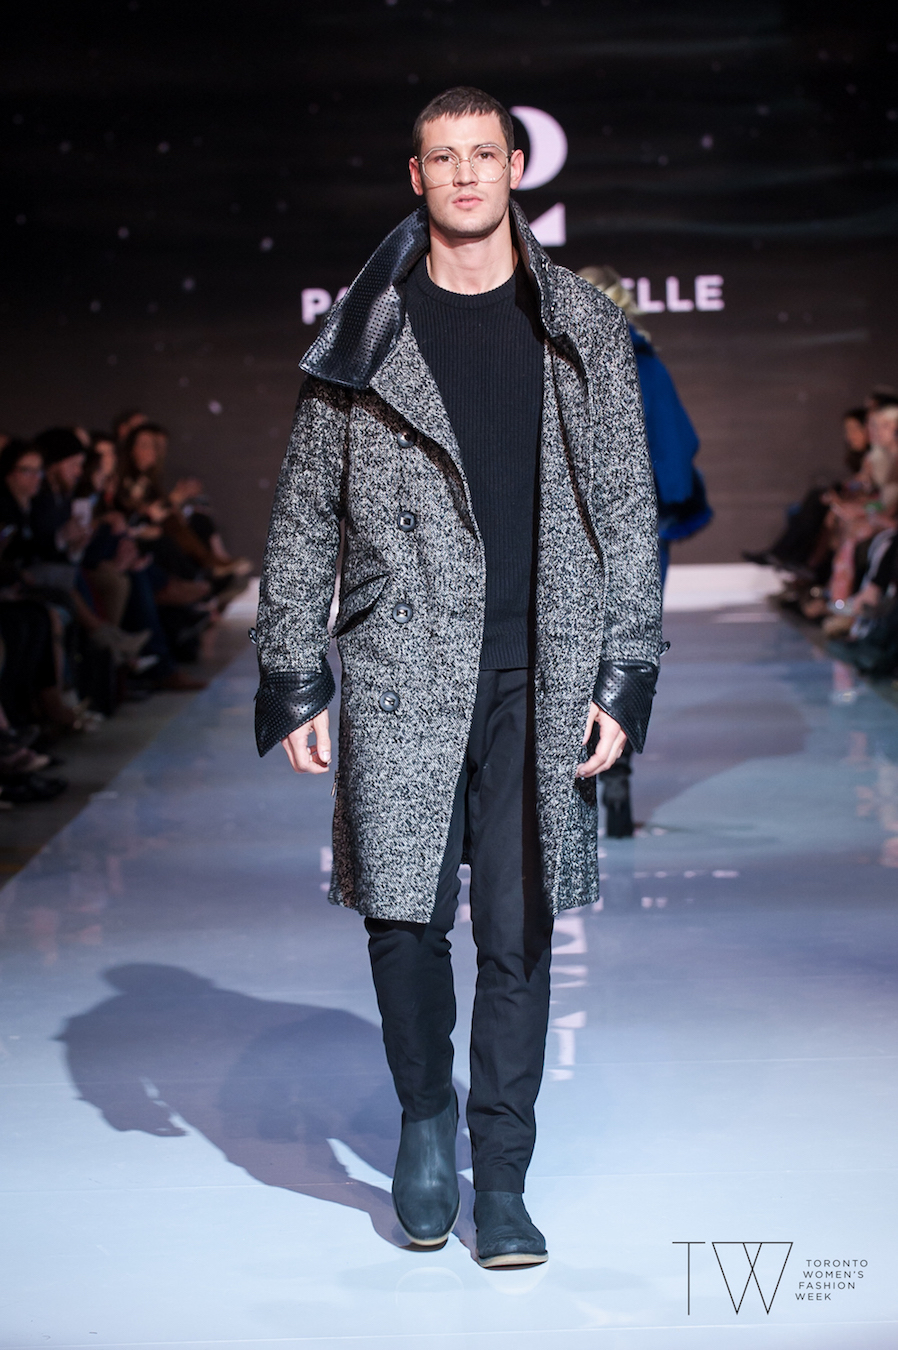 pascal_labelle-twfw-toronto-womens-fashion-week-photo-credit-che-rosales-mens-look-3.jpg